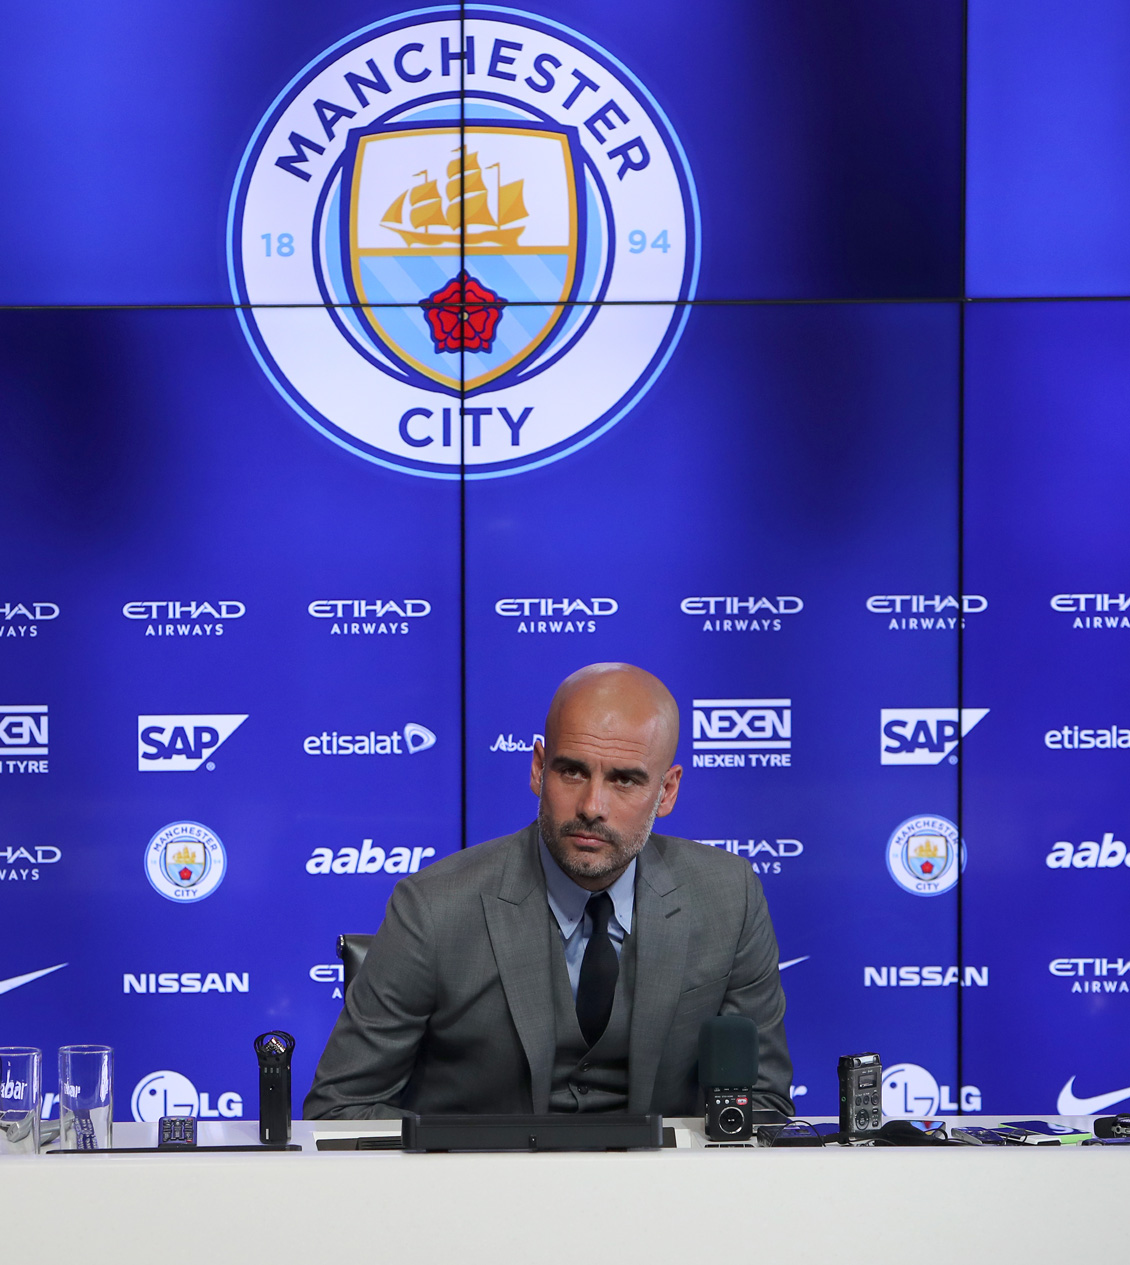 Pep Guardiola at a Manchester City press conference supported by Etihad Etisalat SAP AAbar Nexen Nissan and LG